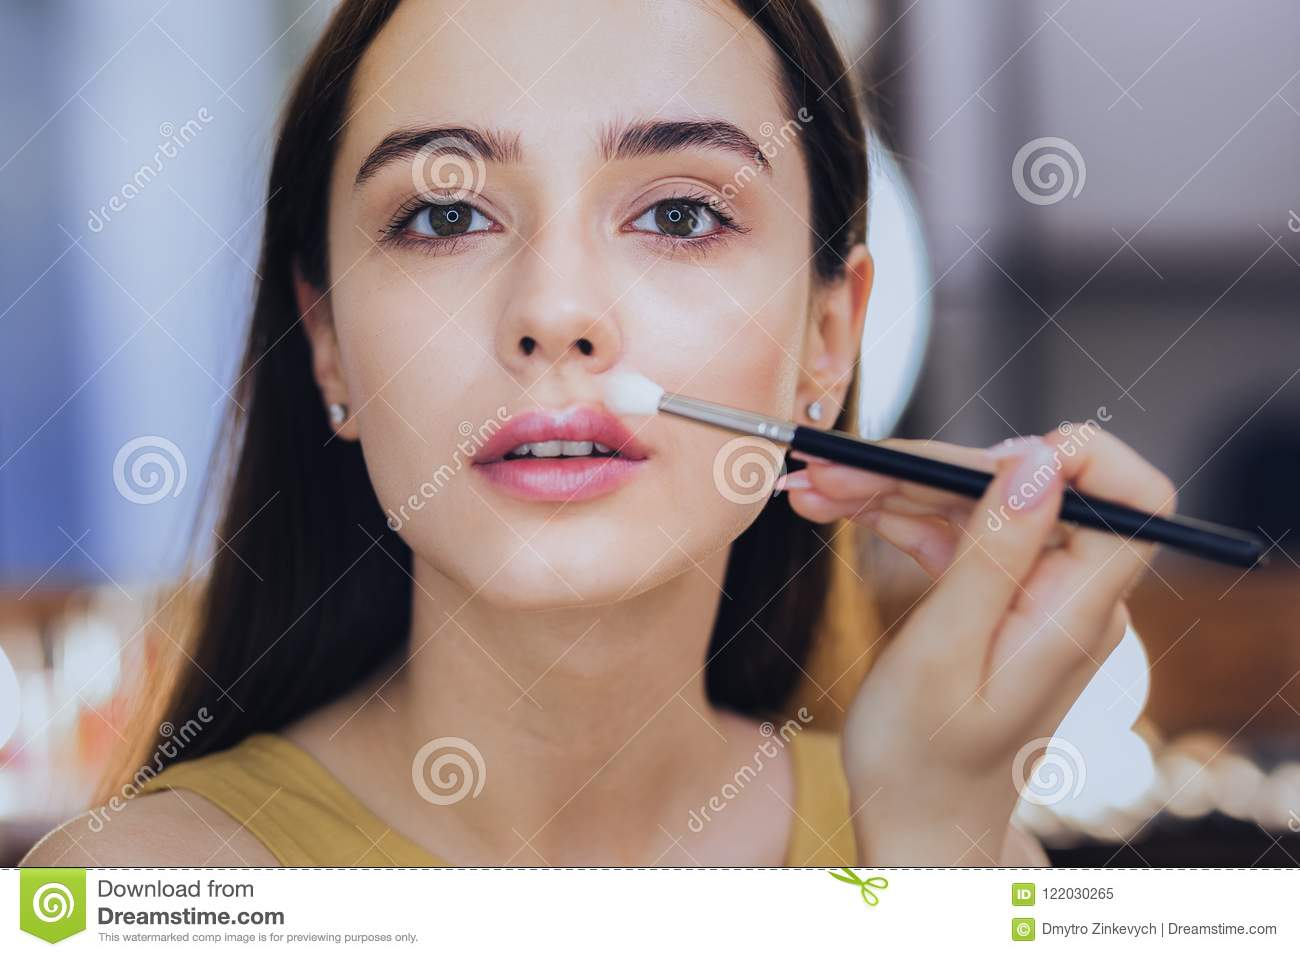 Green-eyed appealing woman holding little face brush in her hand